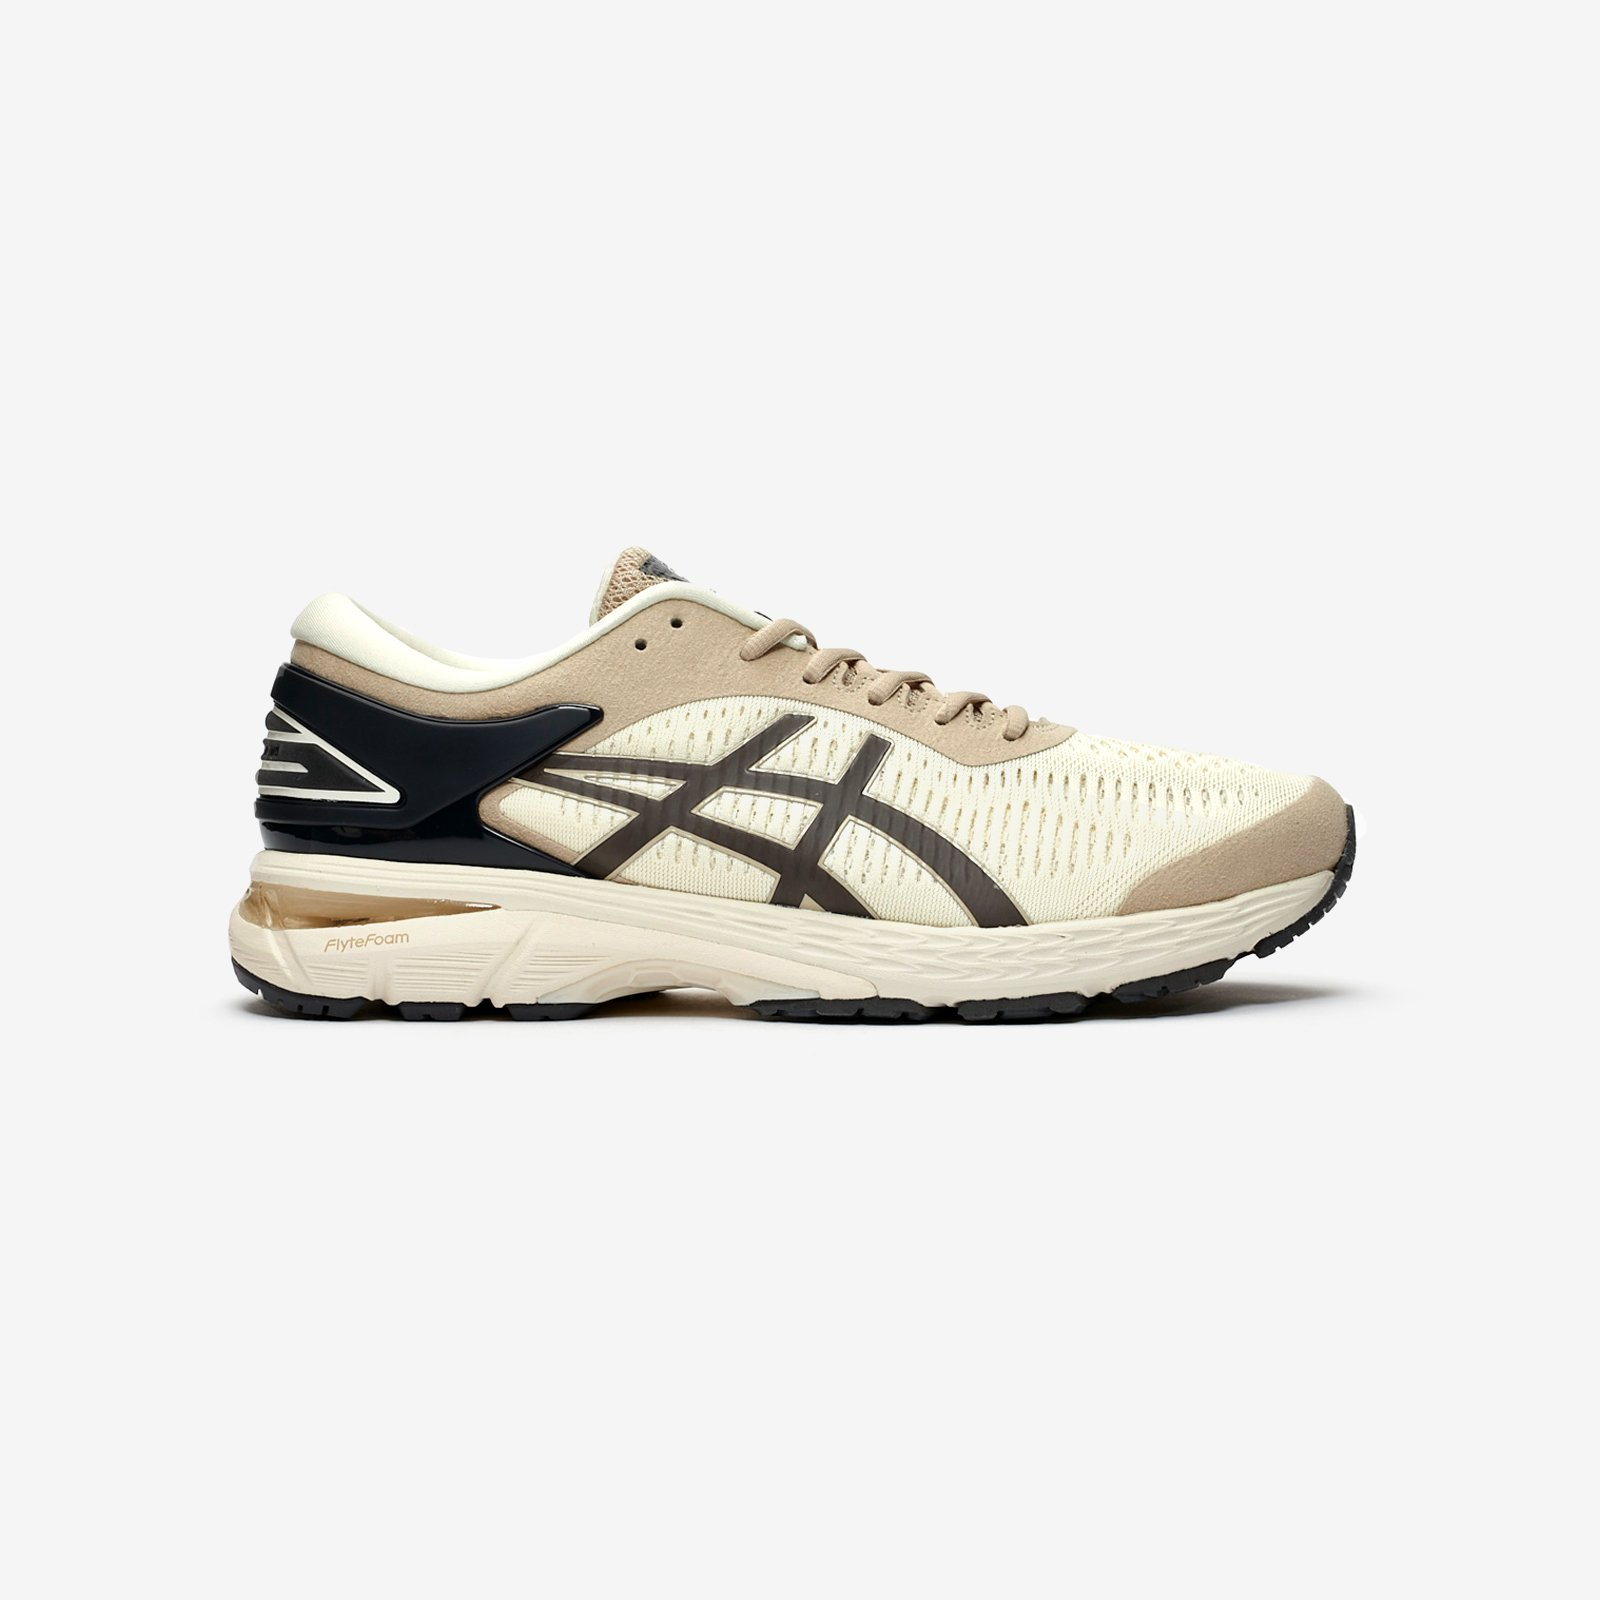 ASICS SportStyle Gel Kayano 25 x Reigning Champ 1011a644